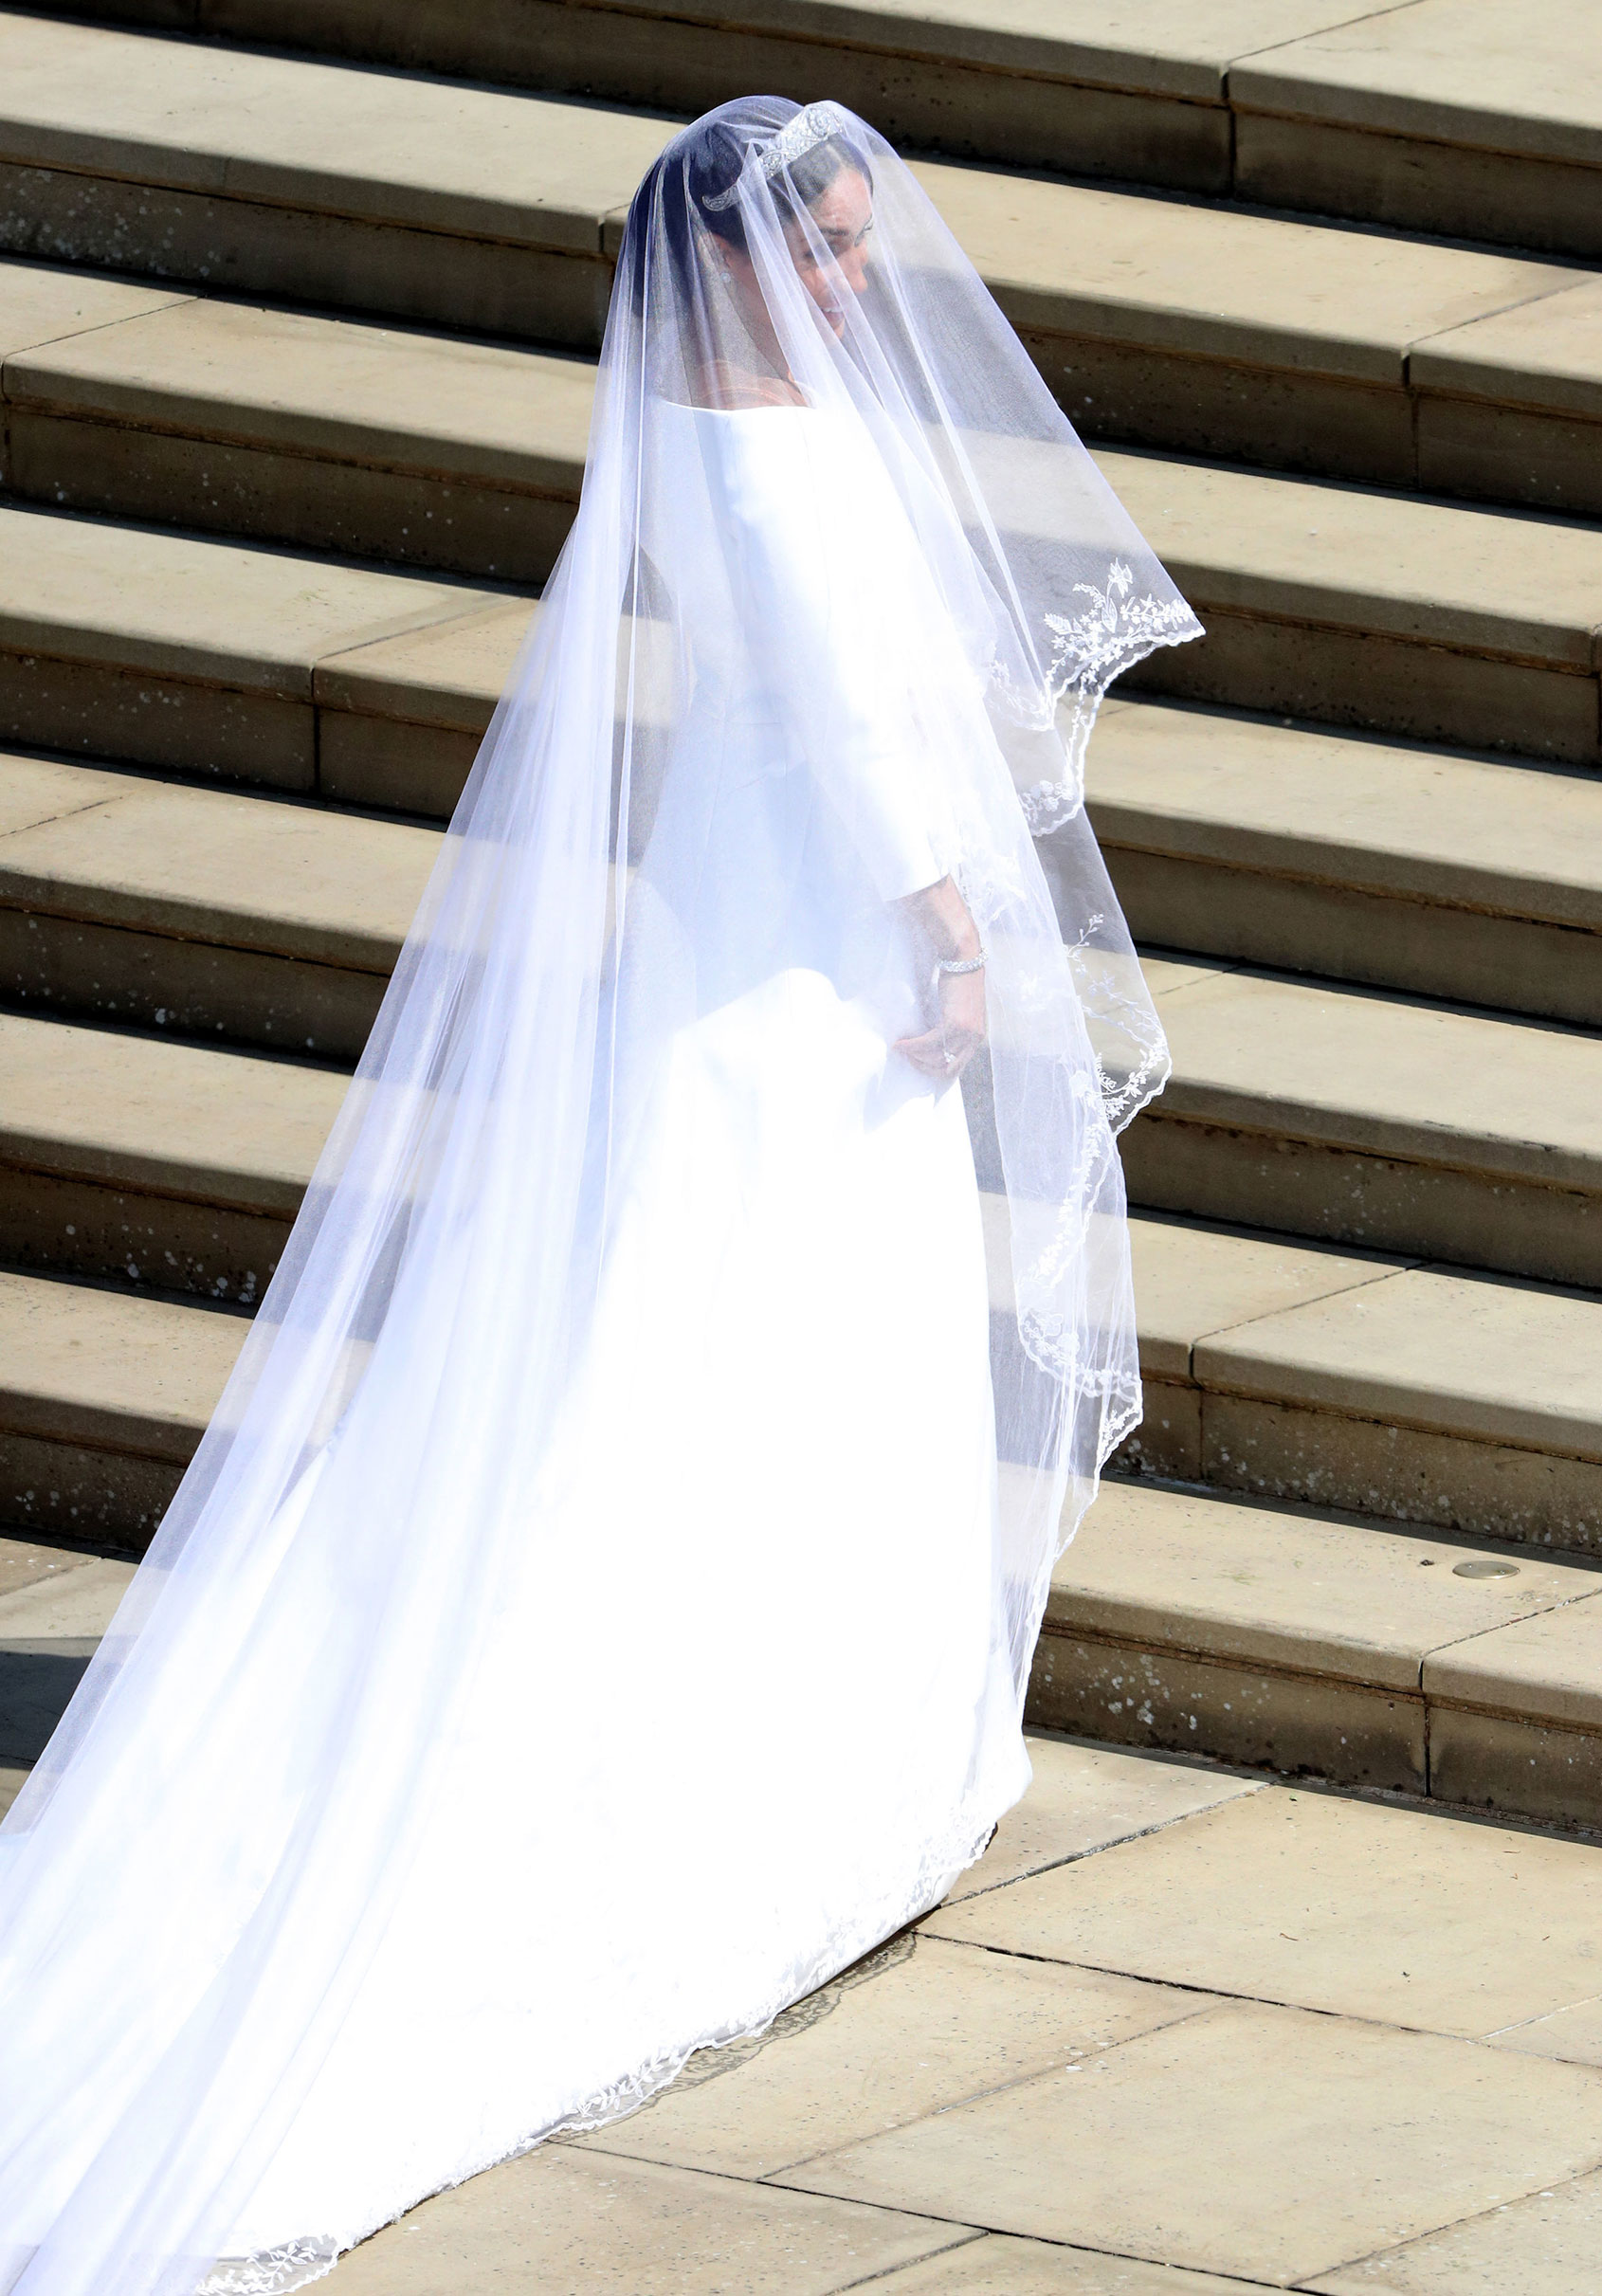 Royal Wedding Meghan Markle's wedding dress